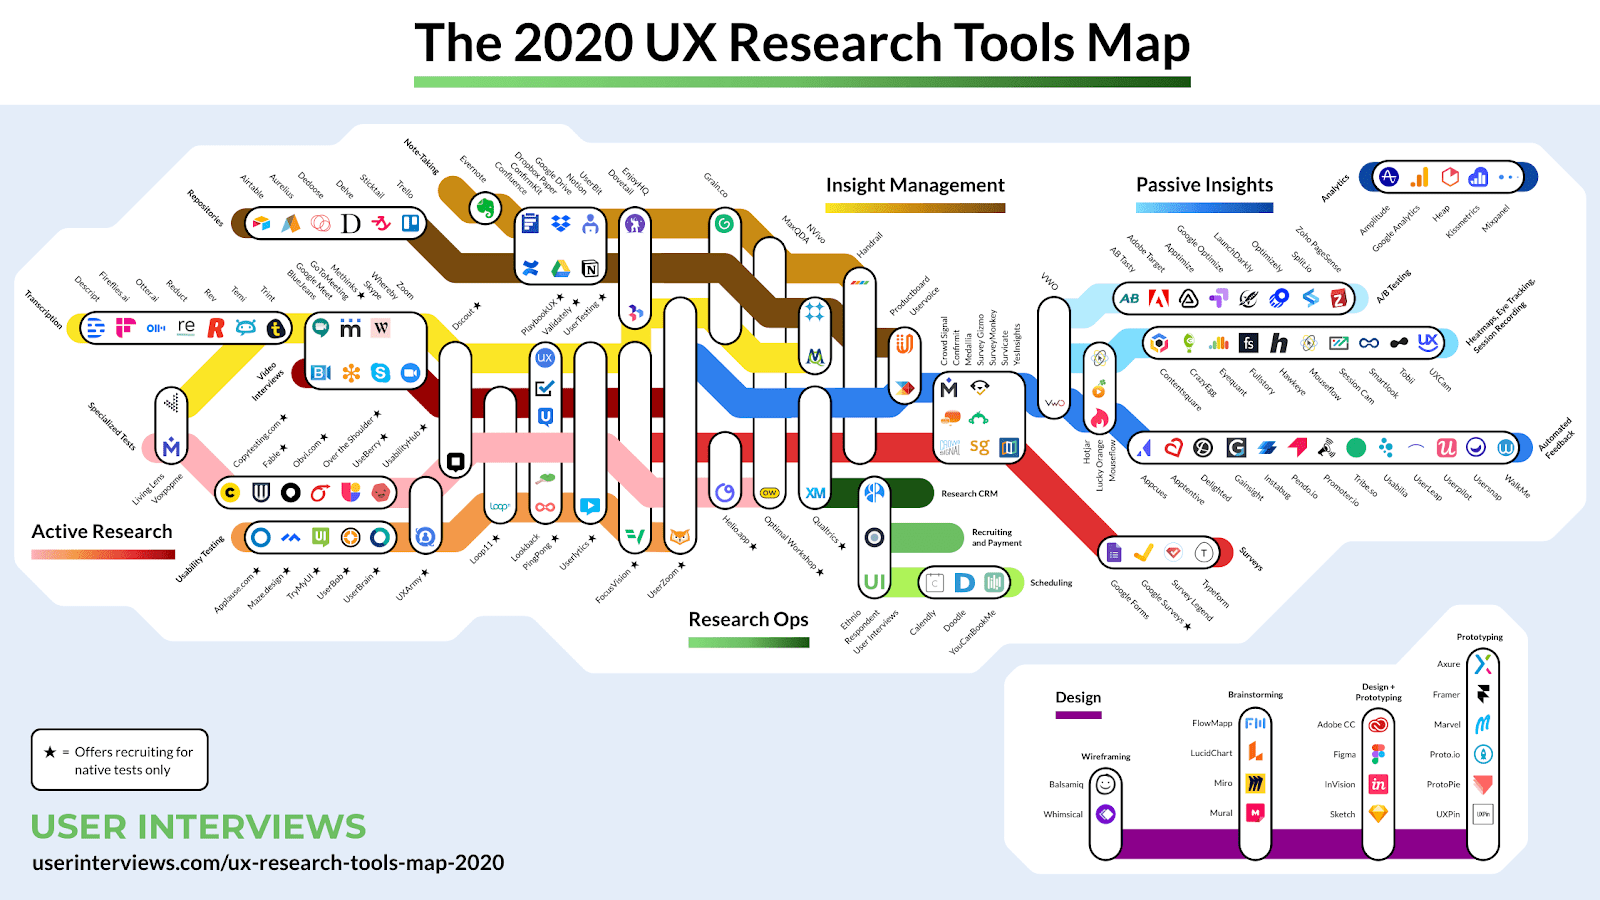 2020 UX Research Tools Map: Subway style map with UX research tools from different categories